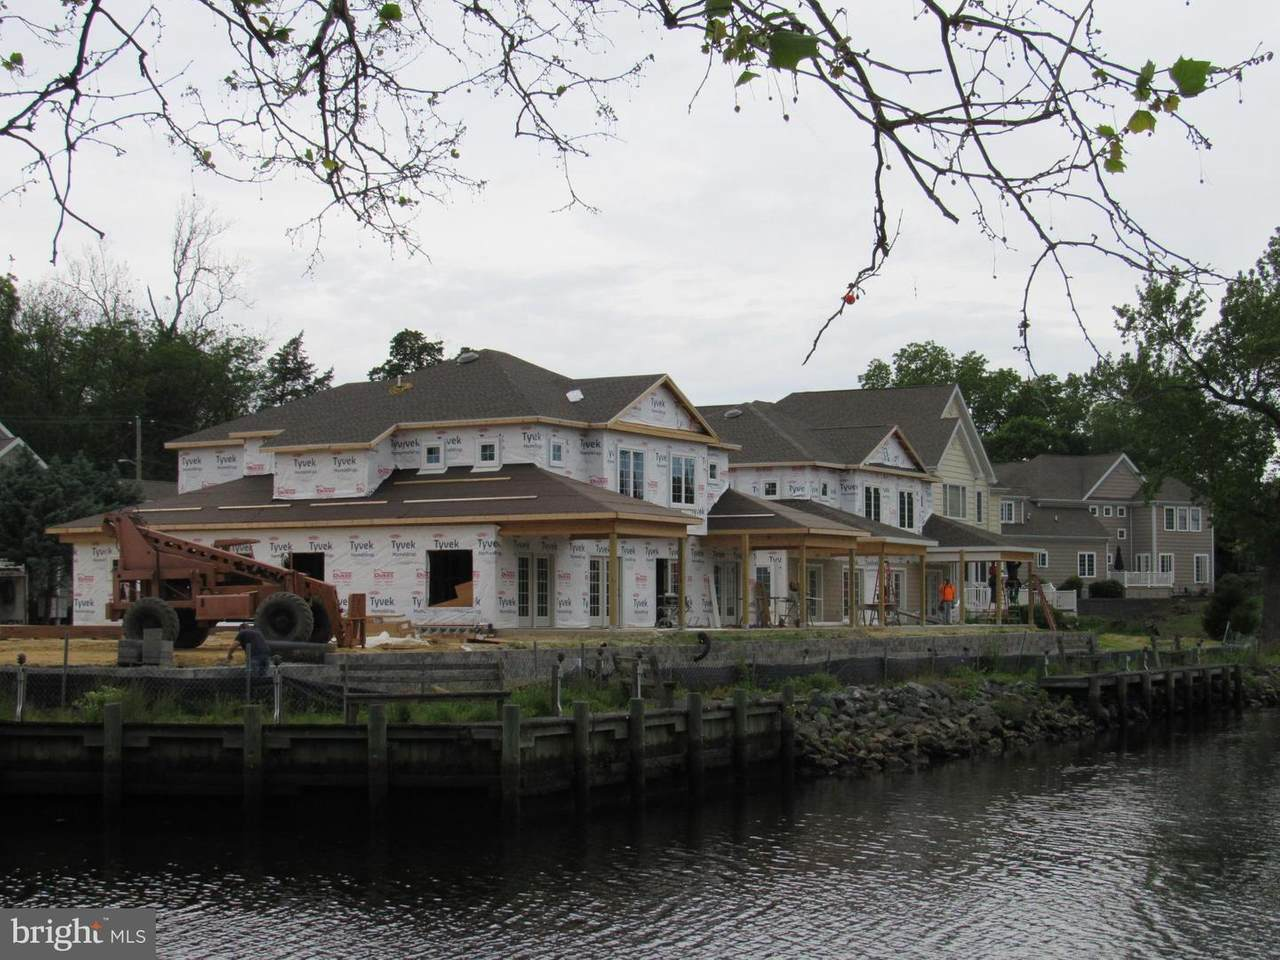 201 Turtle Cove - Photo 1